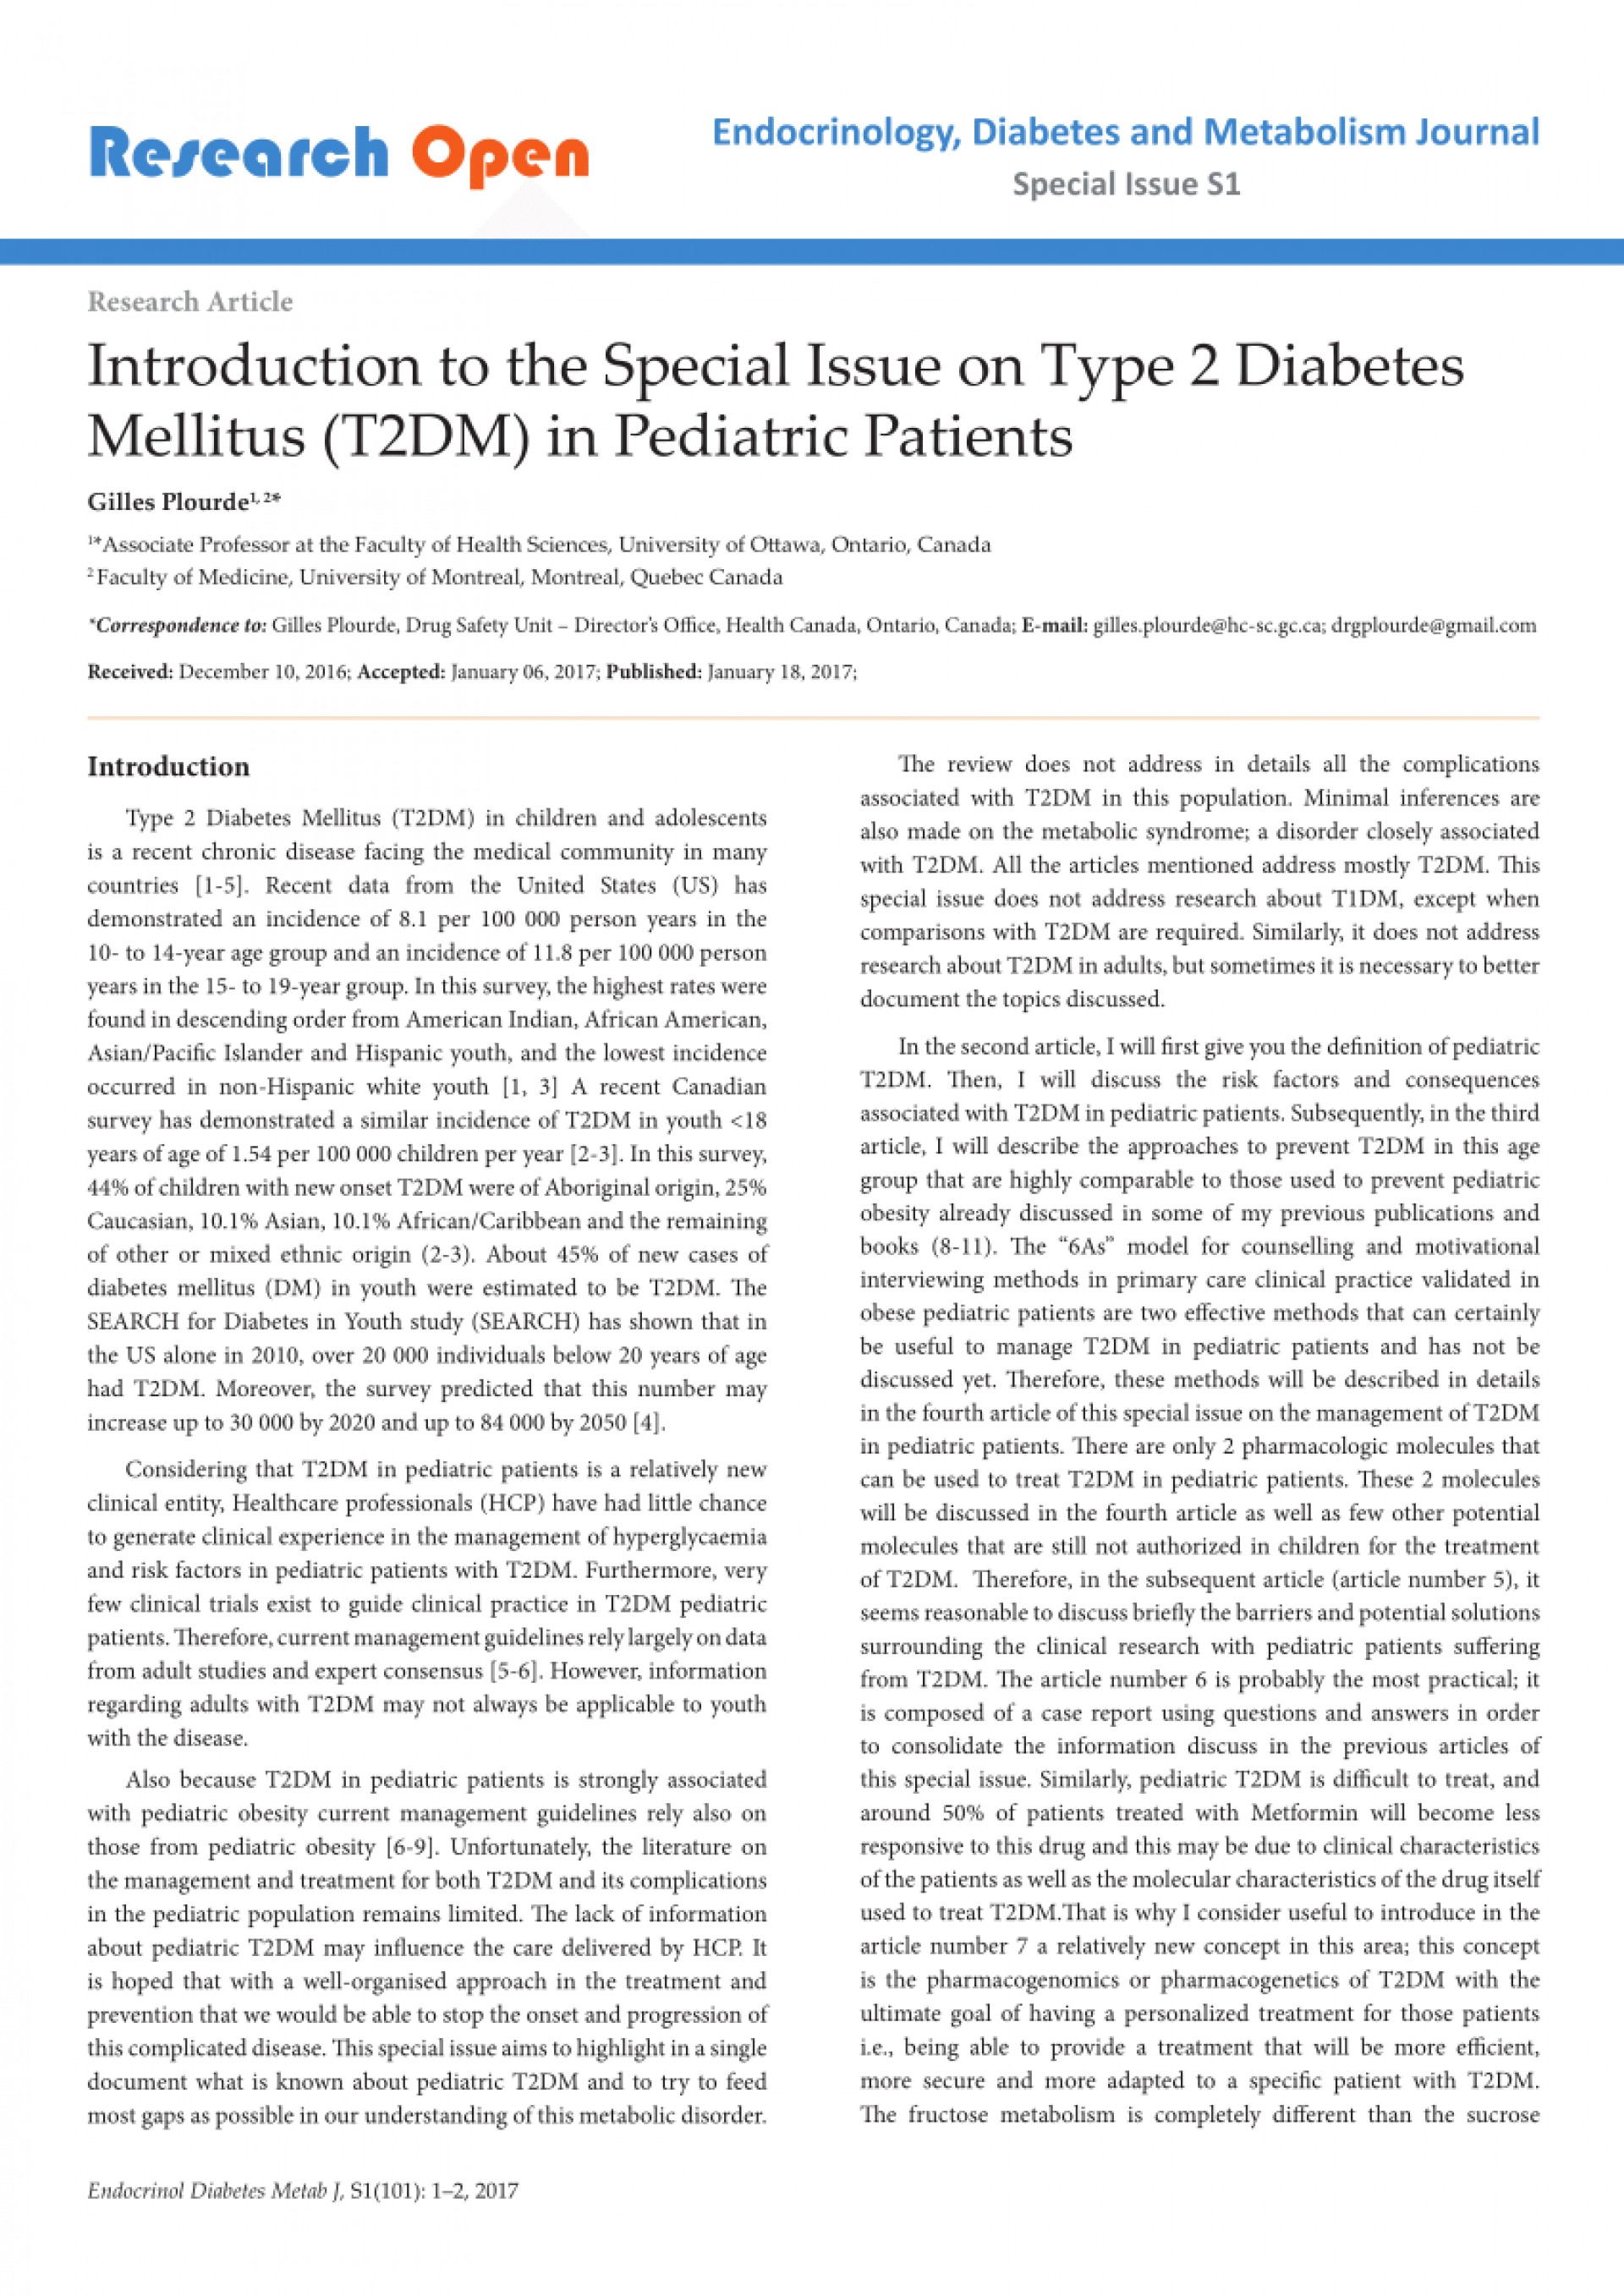 010 Diabetes Mellitus Researchs Largepreview Outstanding Research Papers Paper Outline Pdf 1920